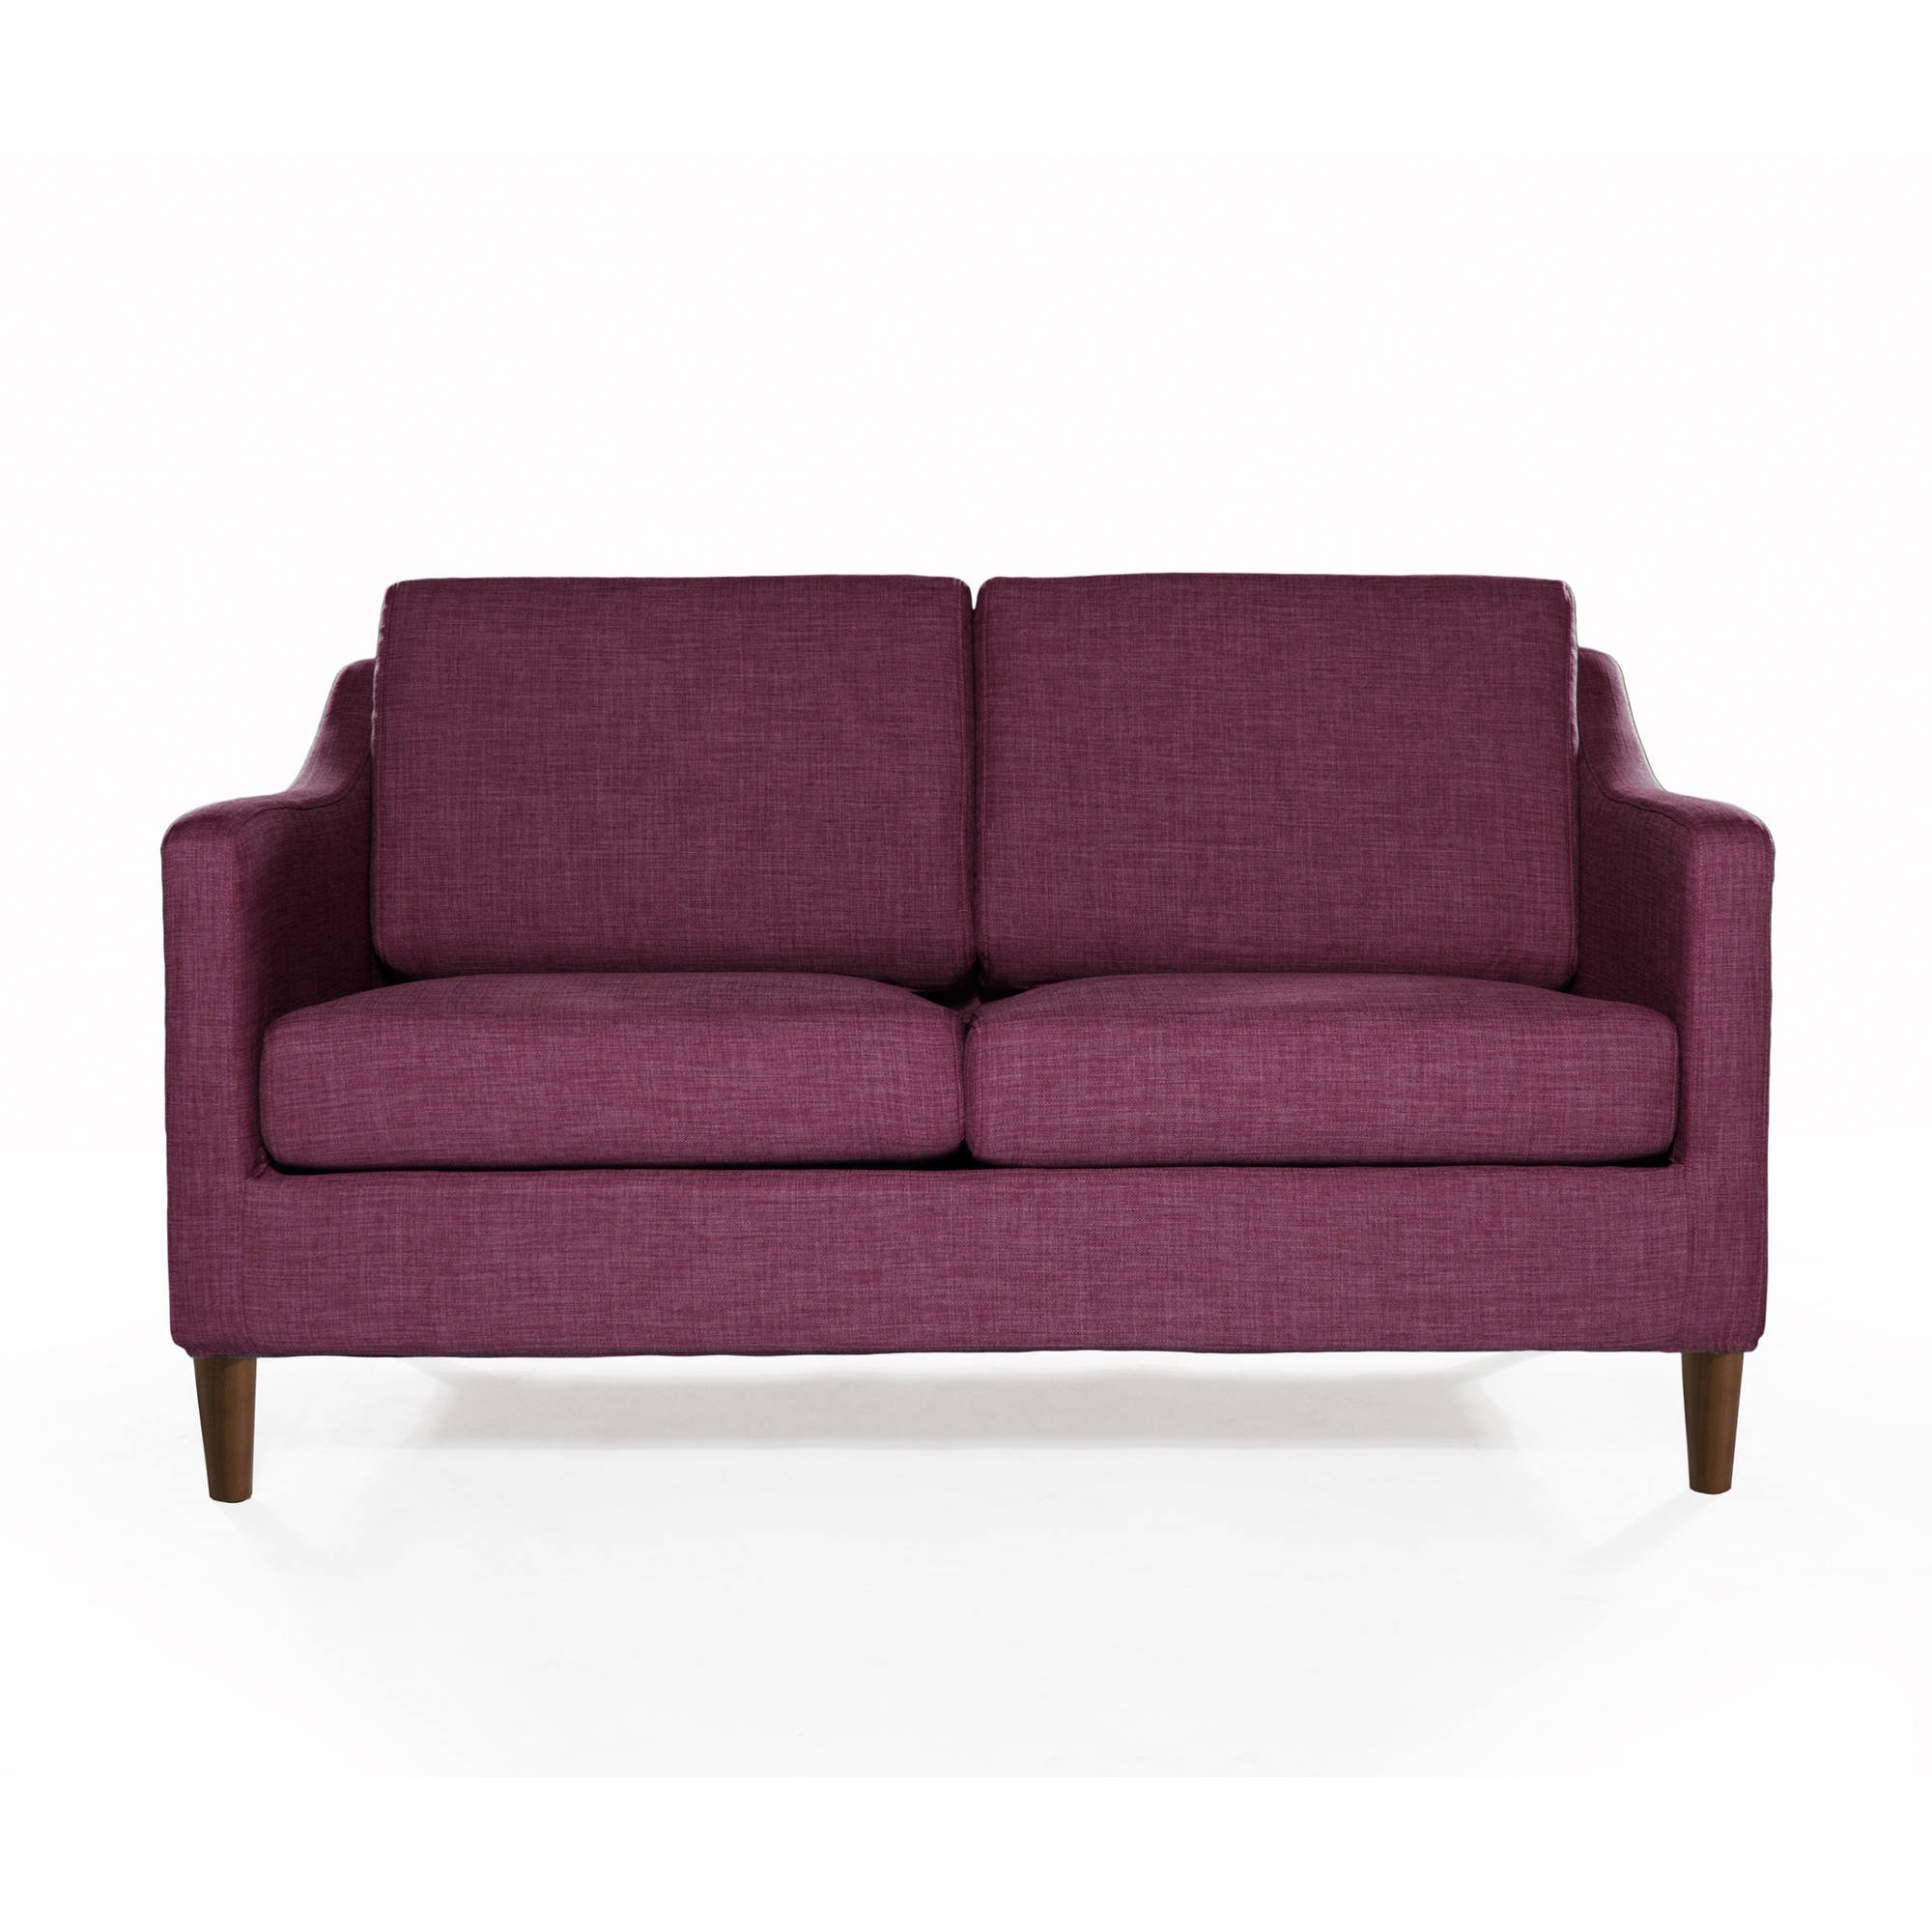 Sectional Sofas - Walmart with Sectional Sofas Under 700 (Image 10 of 15)